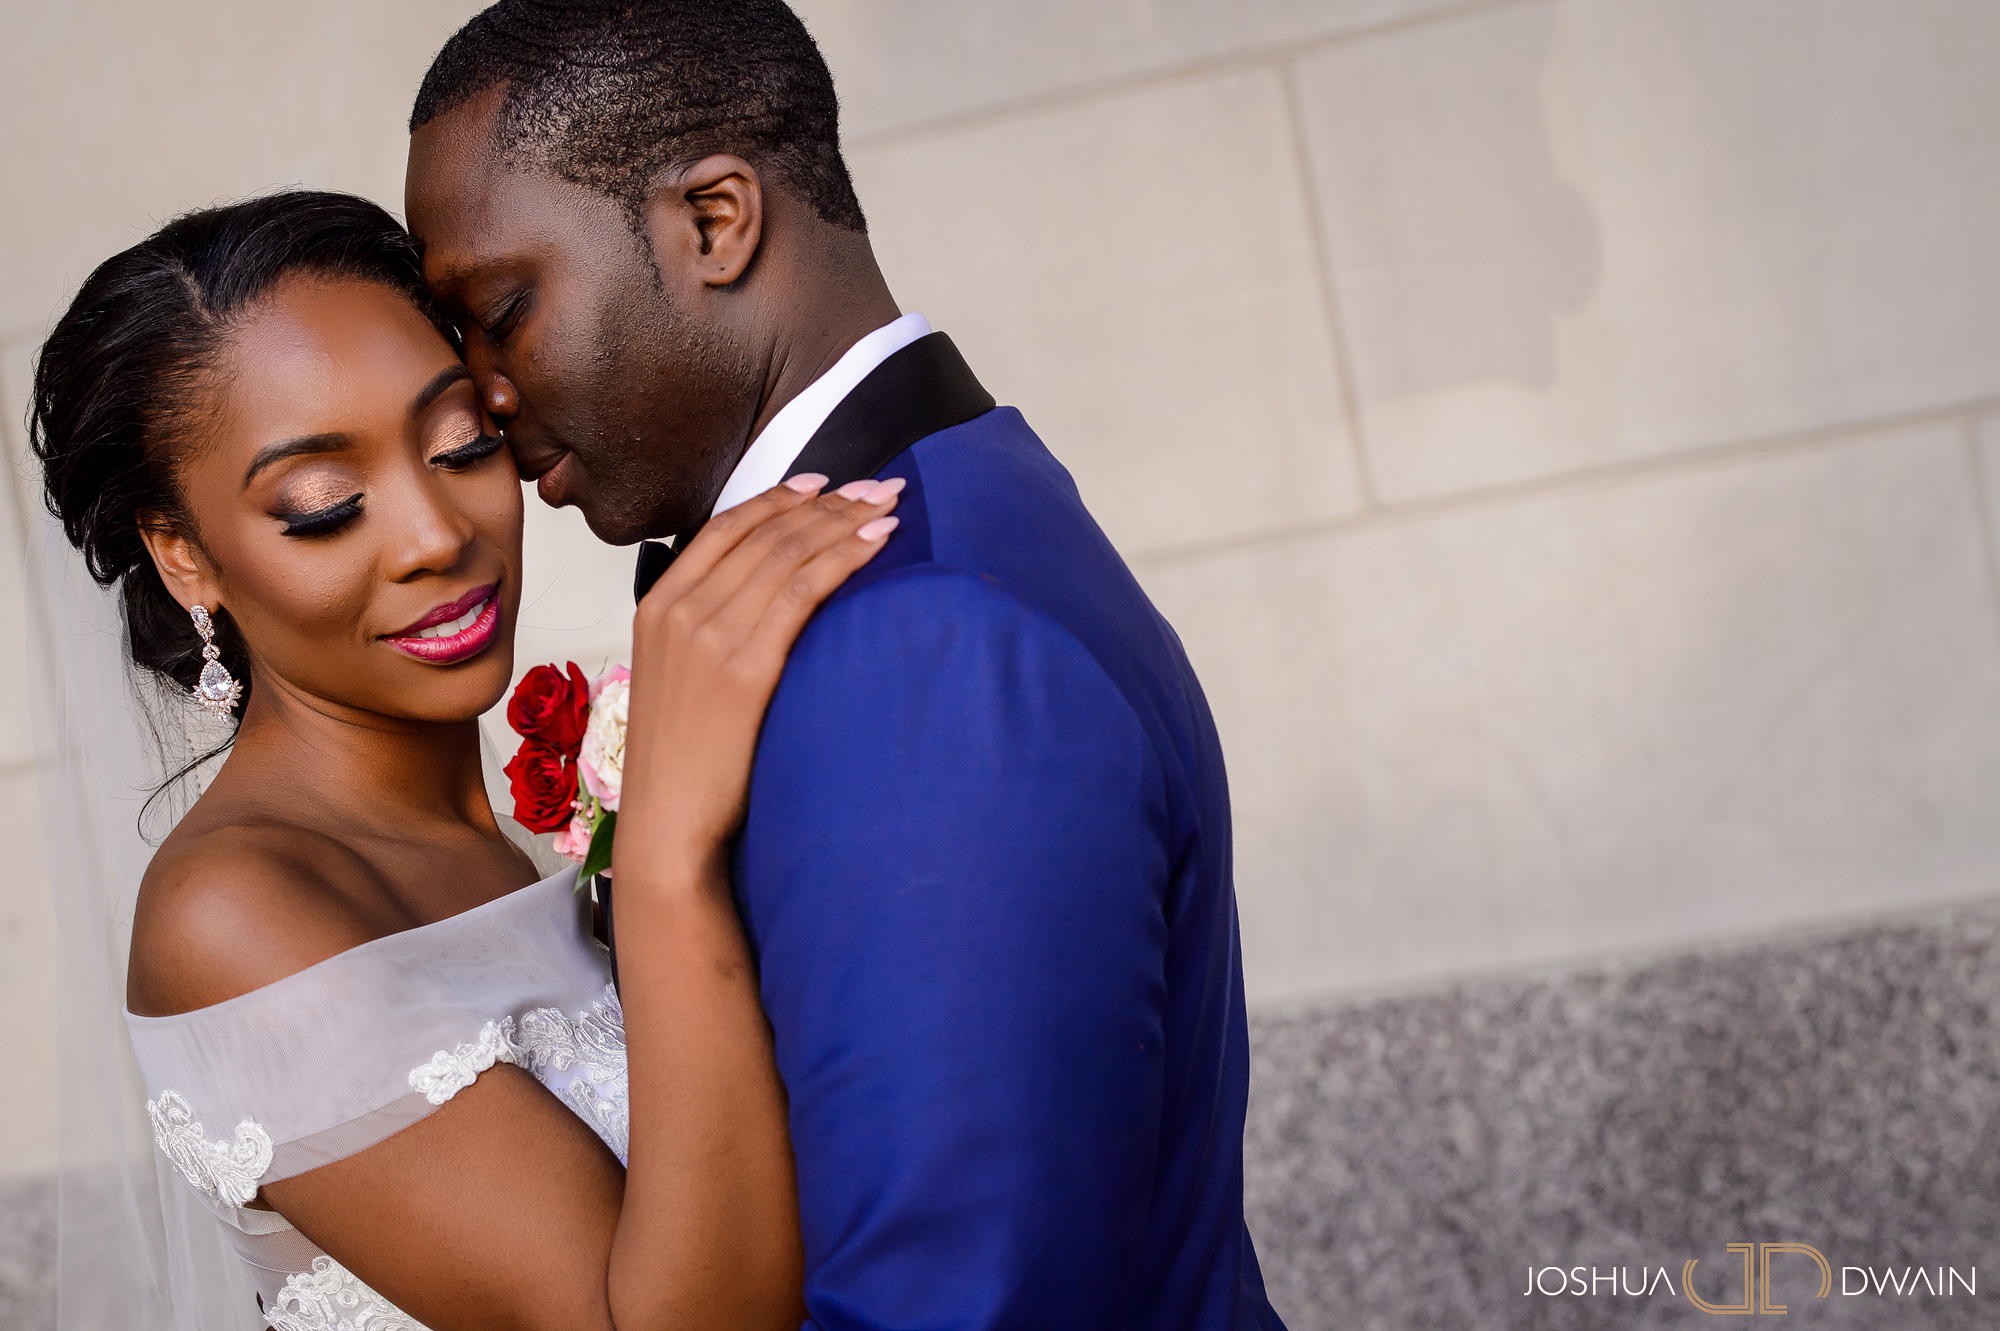 emerald-tolu--024-ronald-reagan-building-trade-center-best-washington-dc--wedding-photographer-joshua-dwain